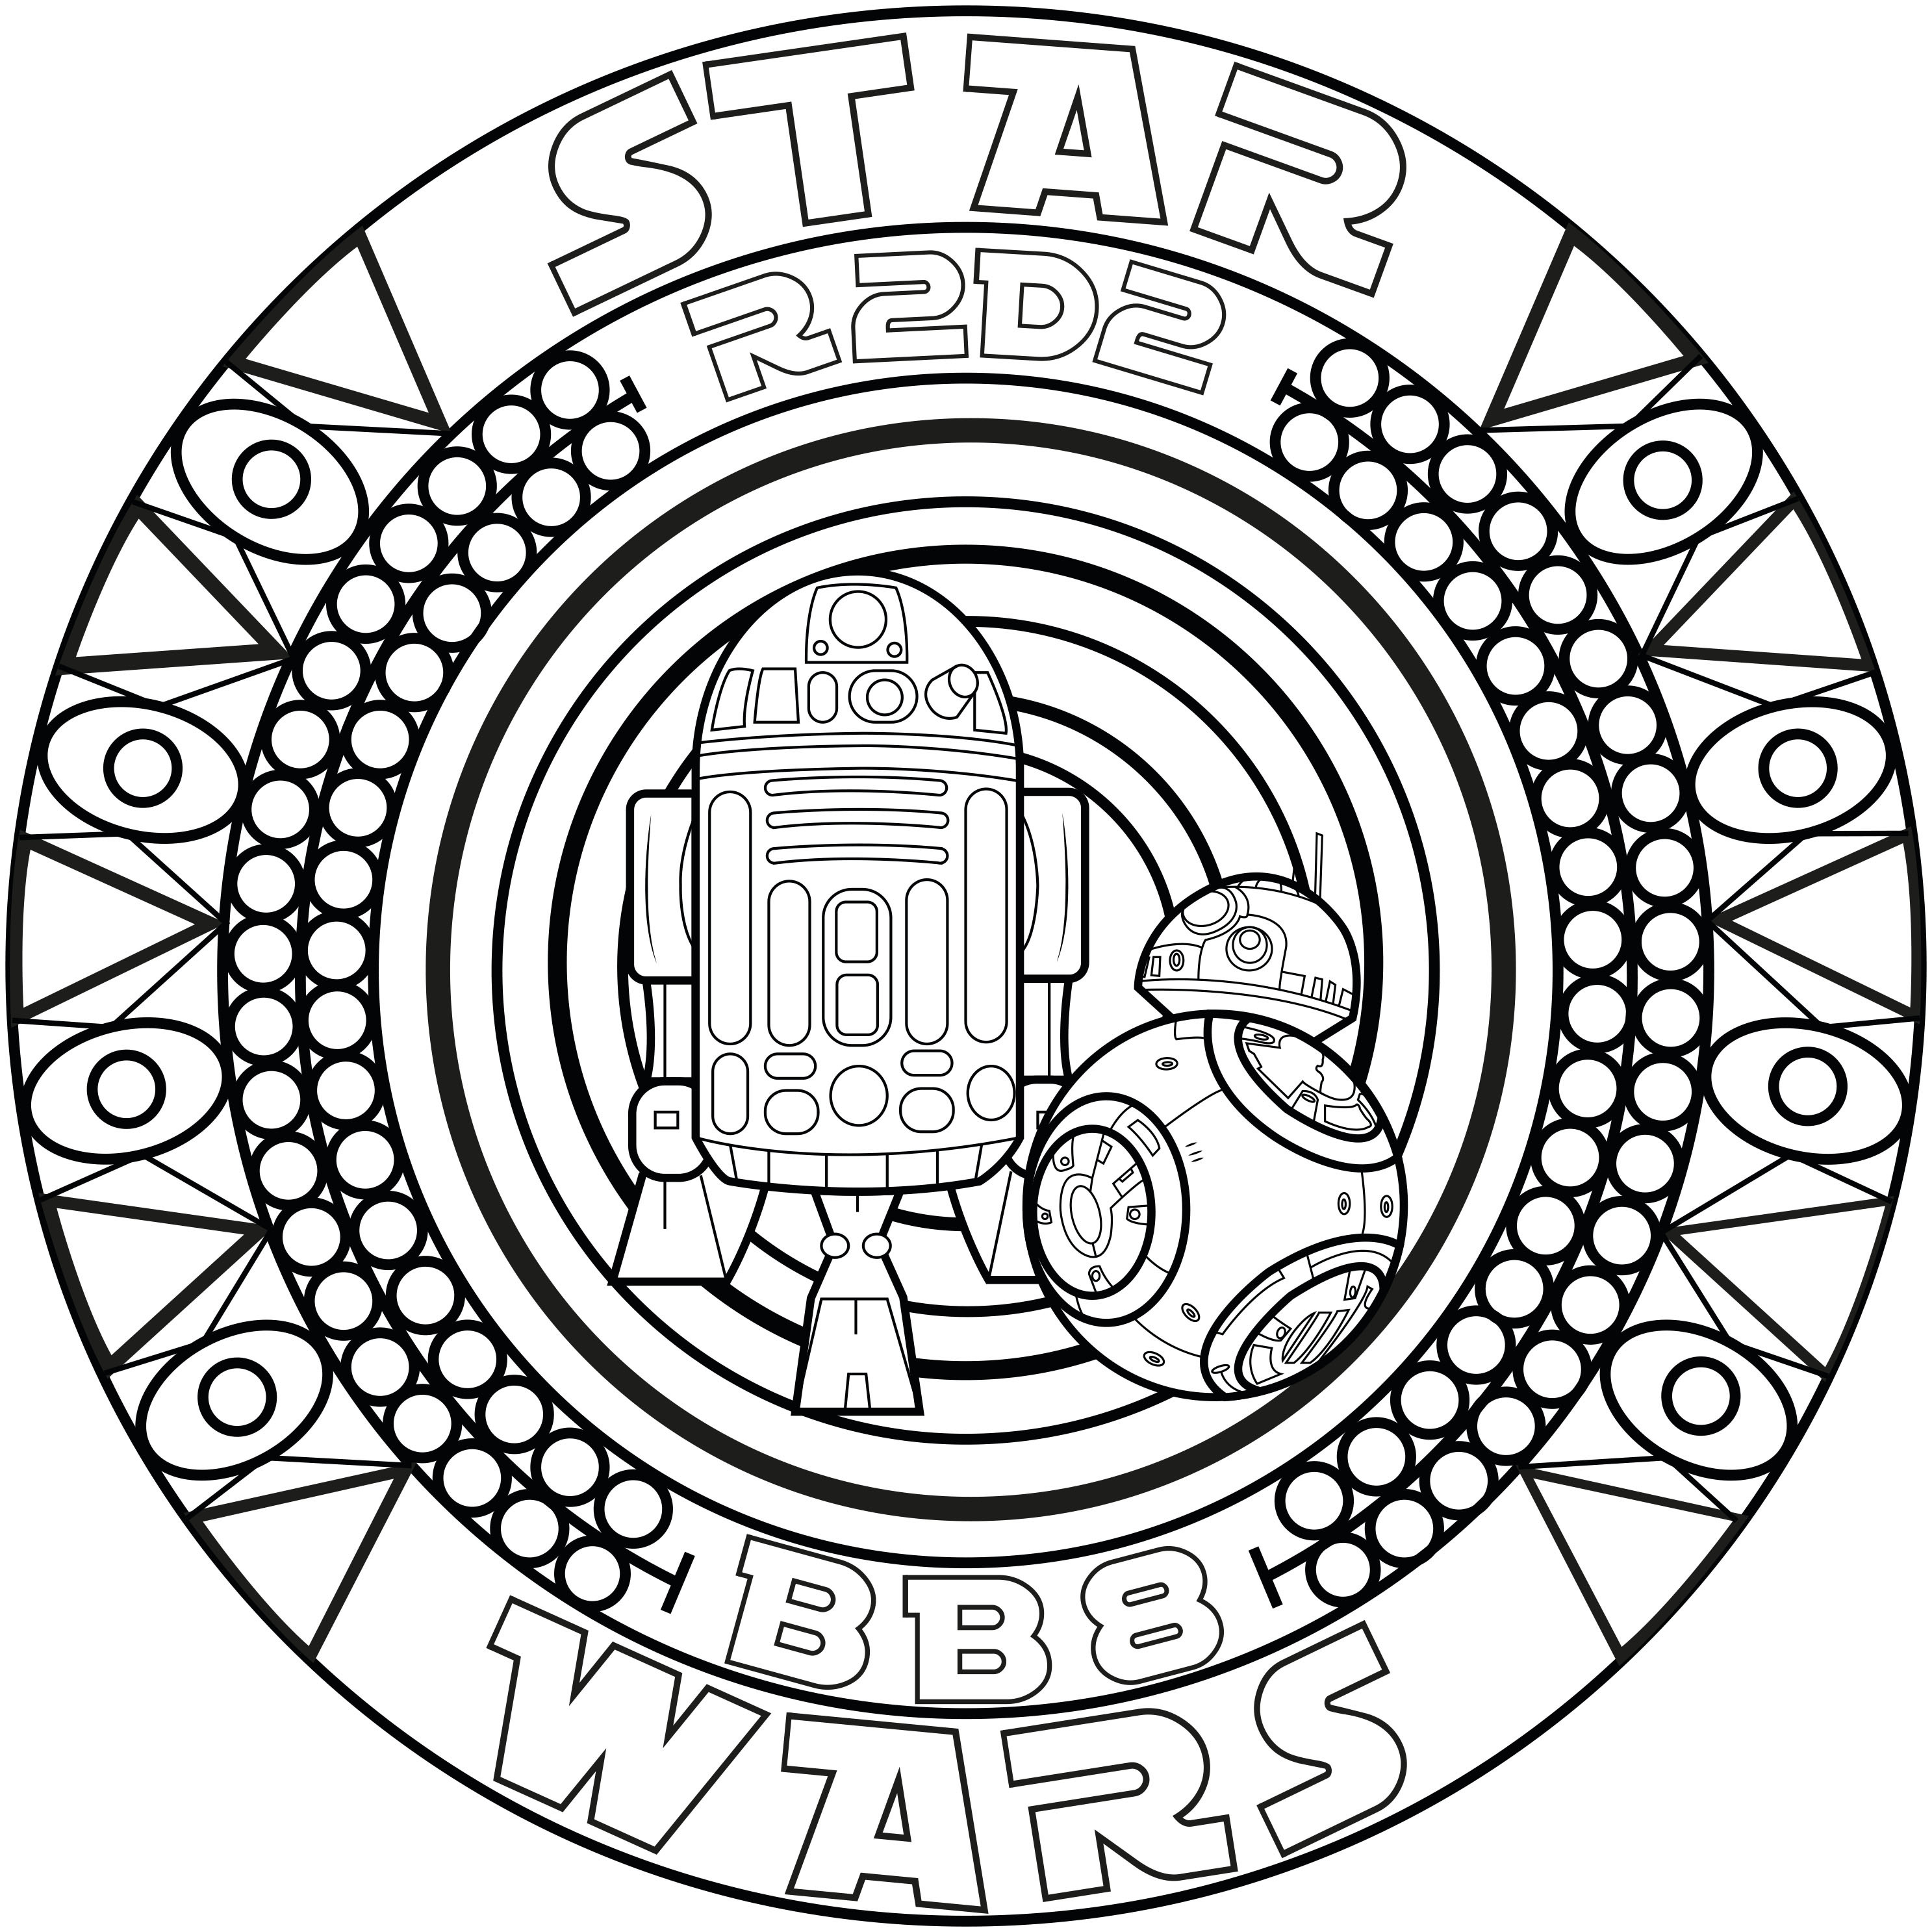 2974x2974 Star Wars Coloring Pages For Adults Justcolor Fine Adult Wagashiya